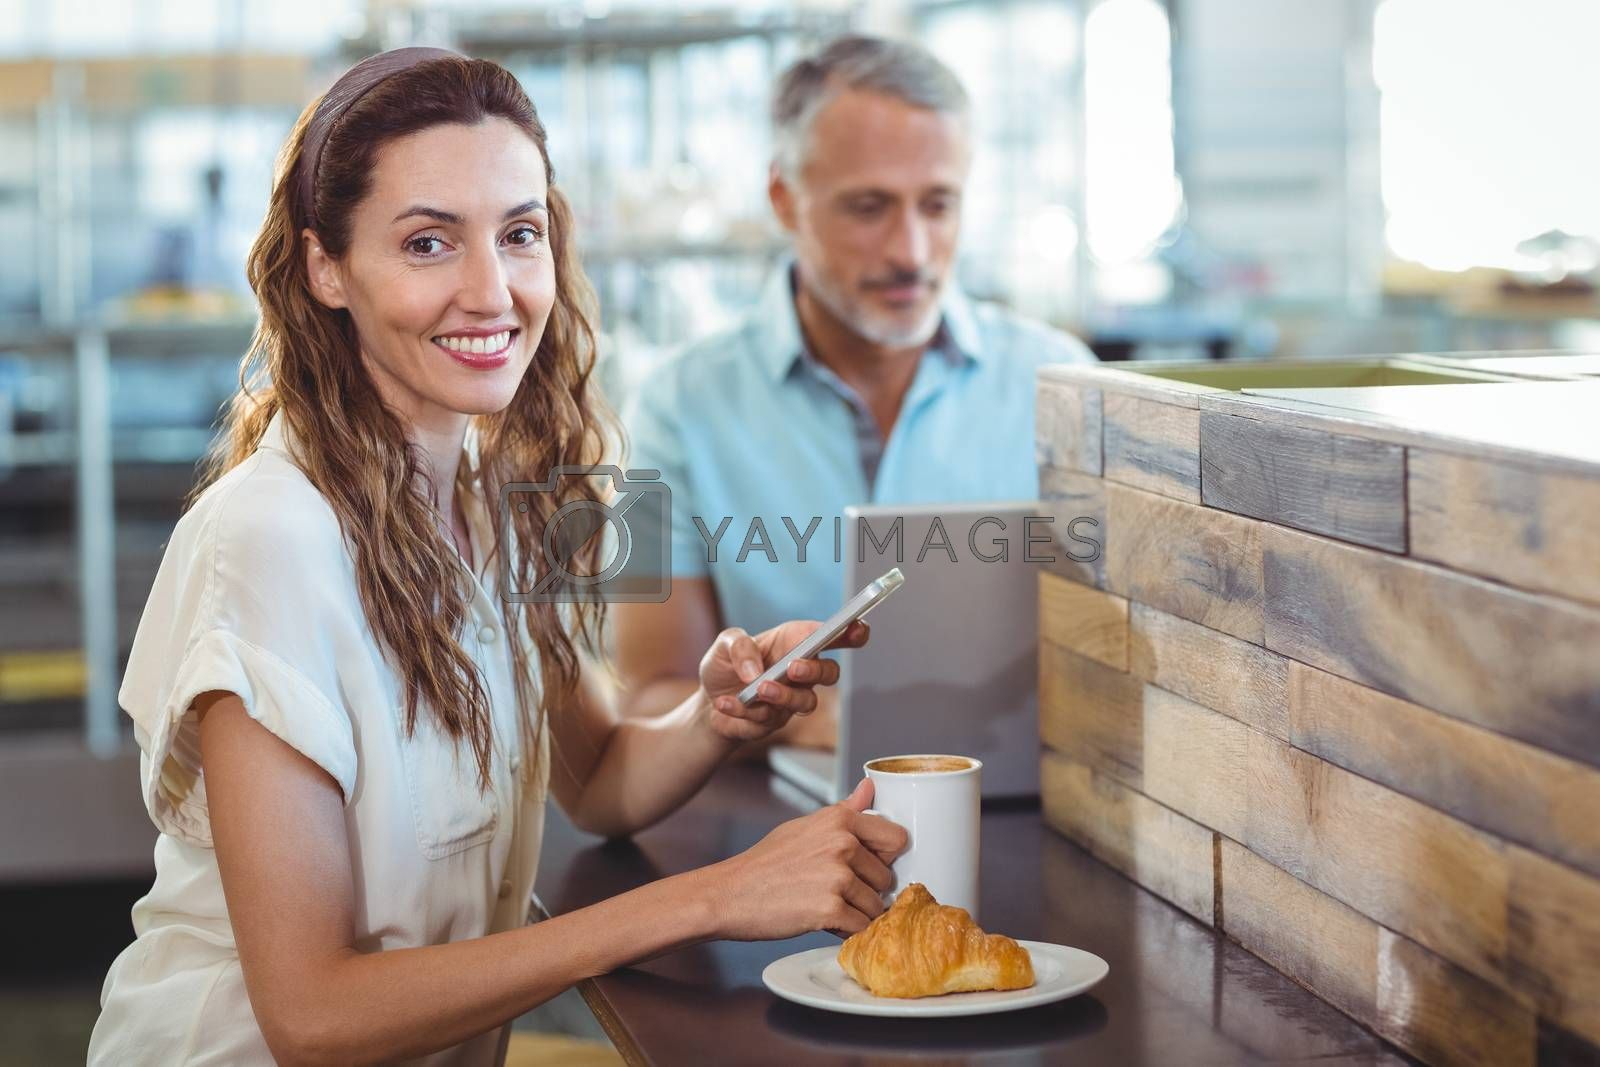 Royalty free image of Pretty brunette smiling at camera and using her smartphone by Wavebreakmedia